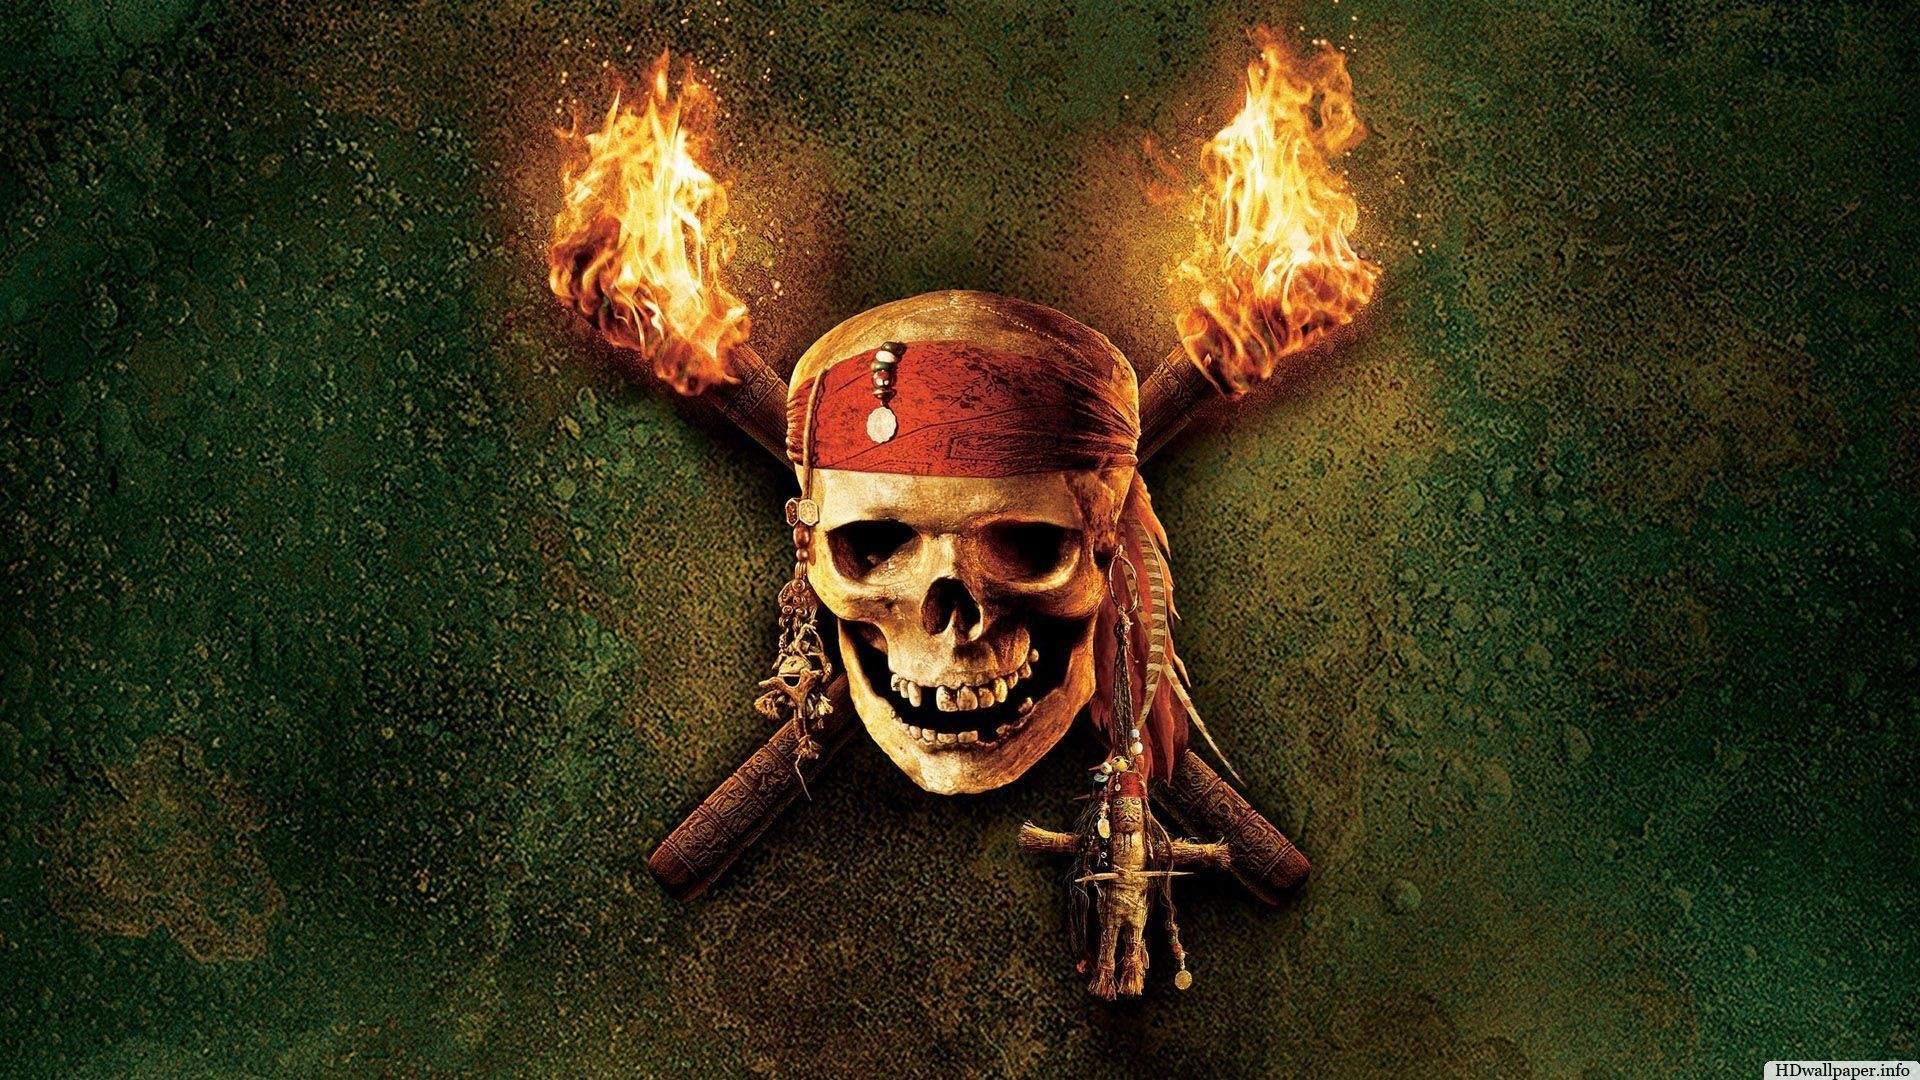 Pirates Of The Carribean Wallpapers 70 Images